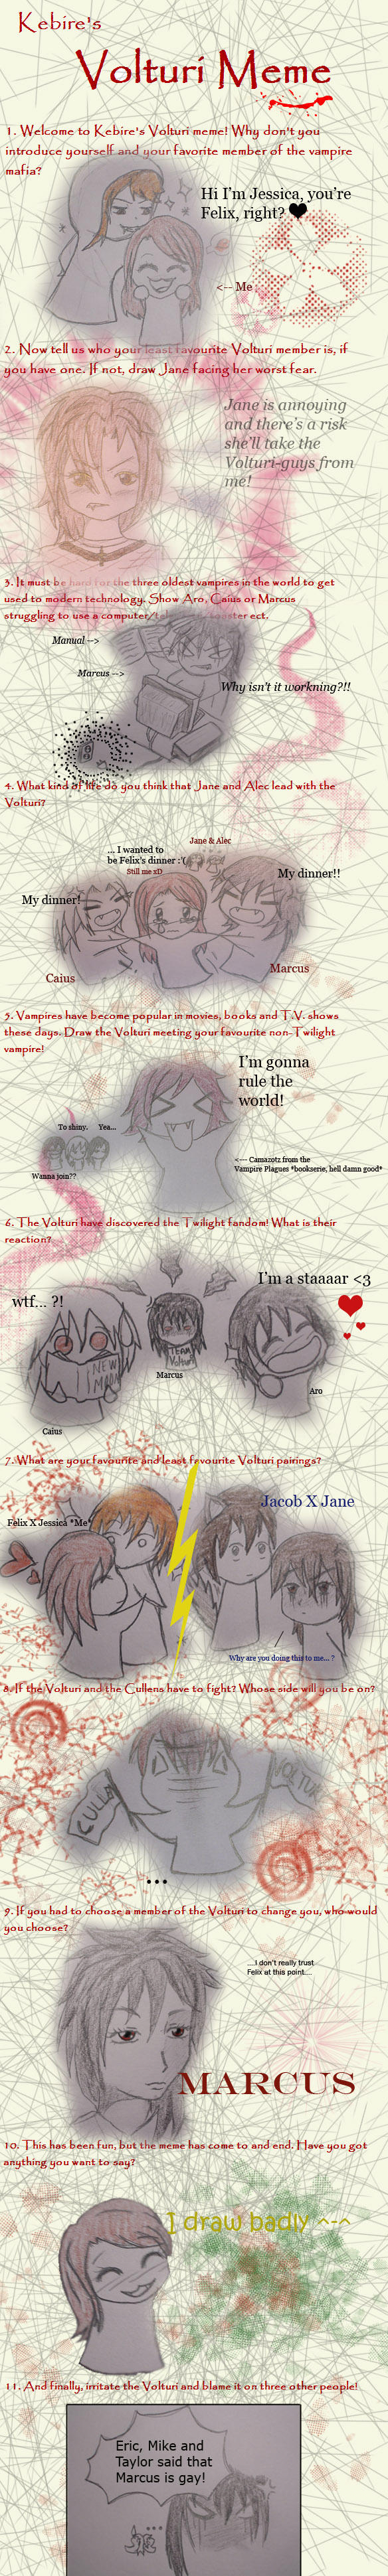 Volturi Twilight Meme By Huntball On Deviantart